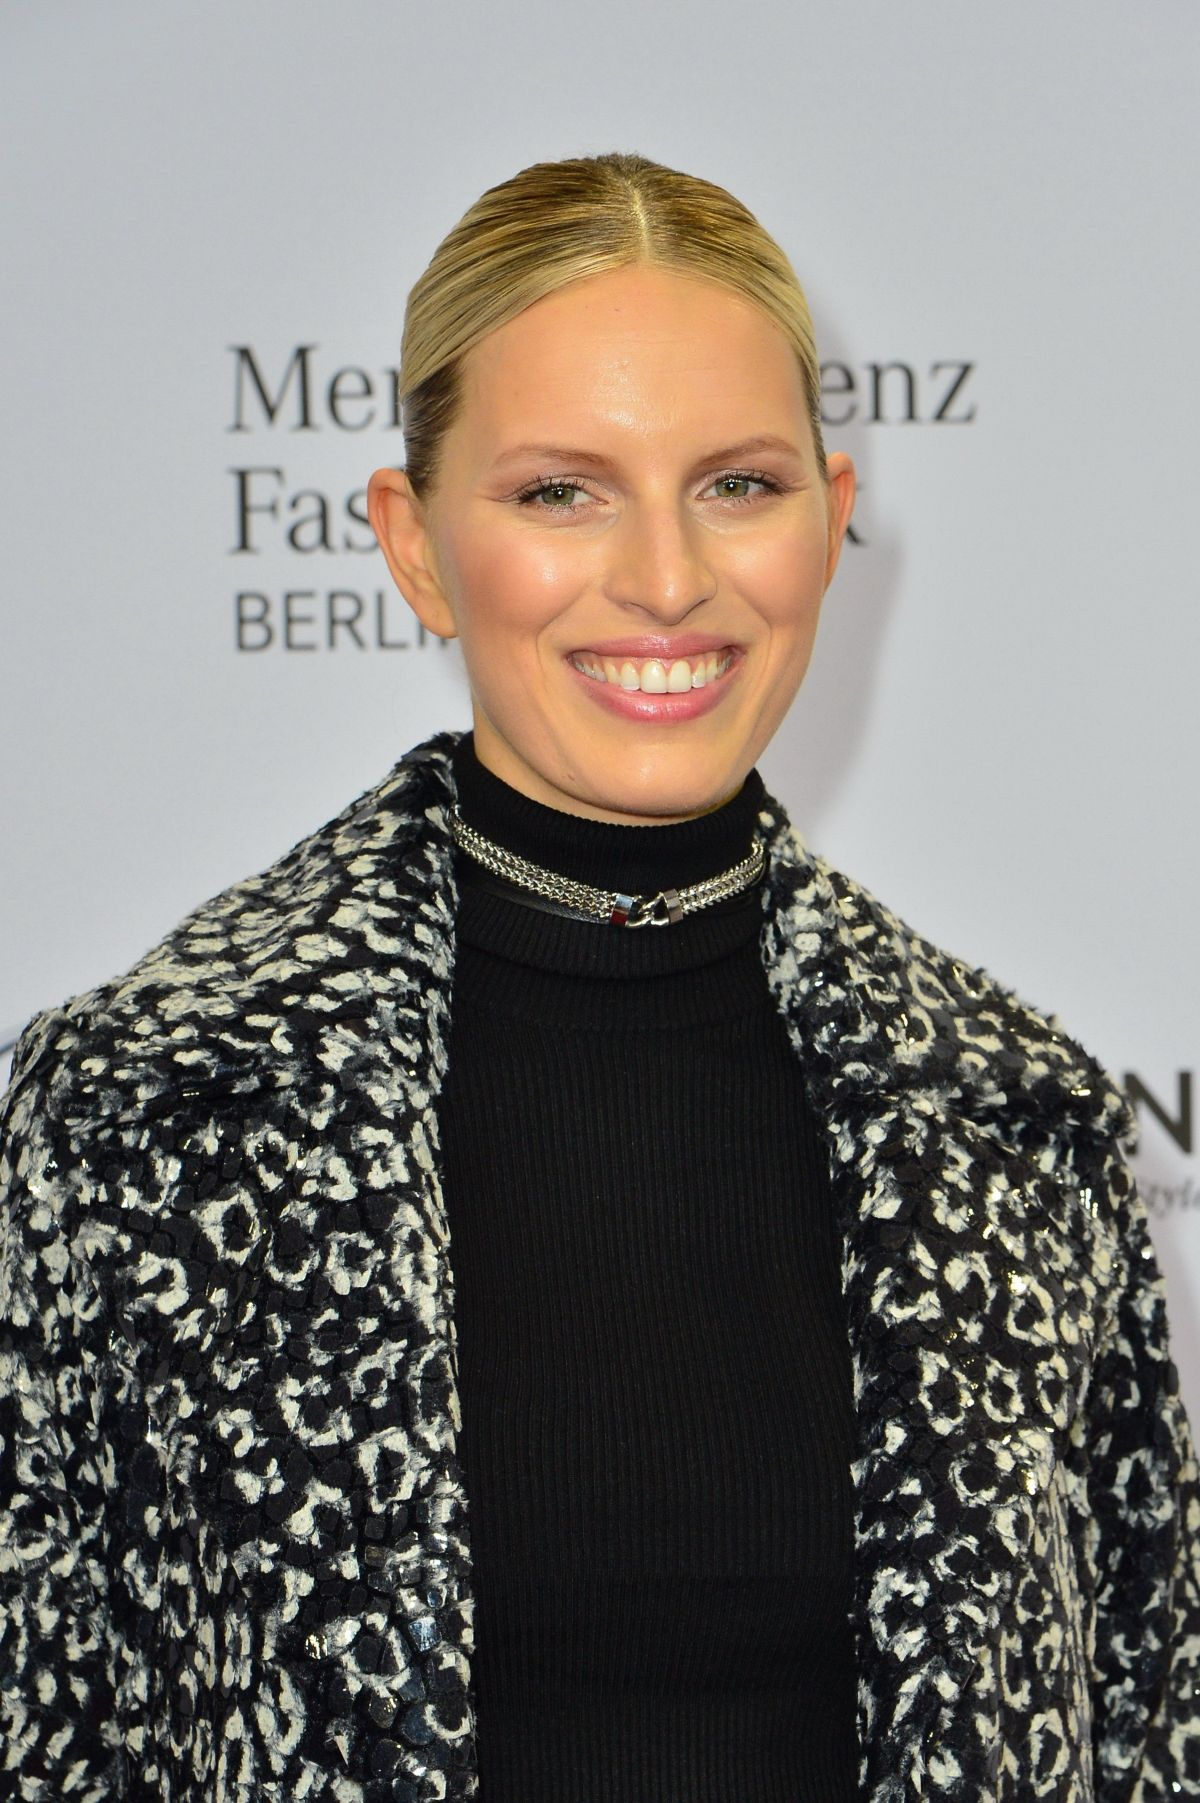 karolina kurkova at guido maria kretschmer fashion show in berlin celebzz celebzz. Black Bedroom Furniture Sets. Home Design Ideas